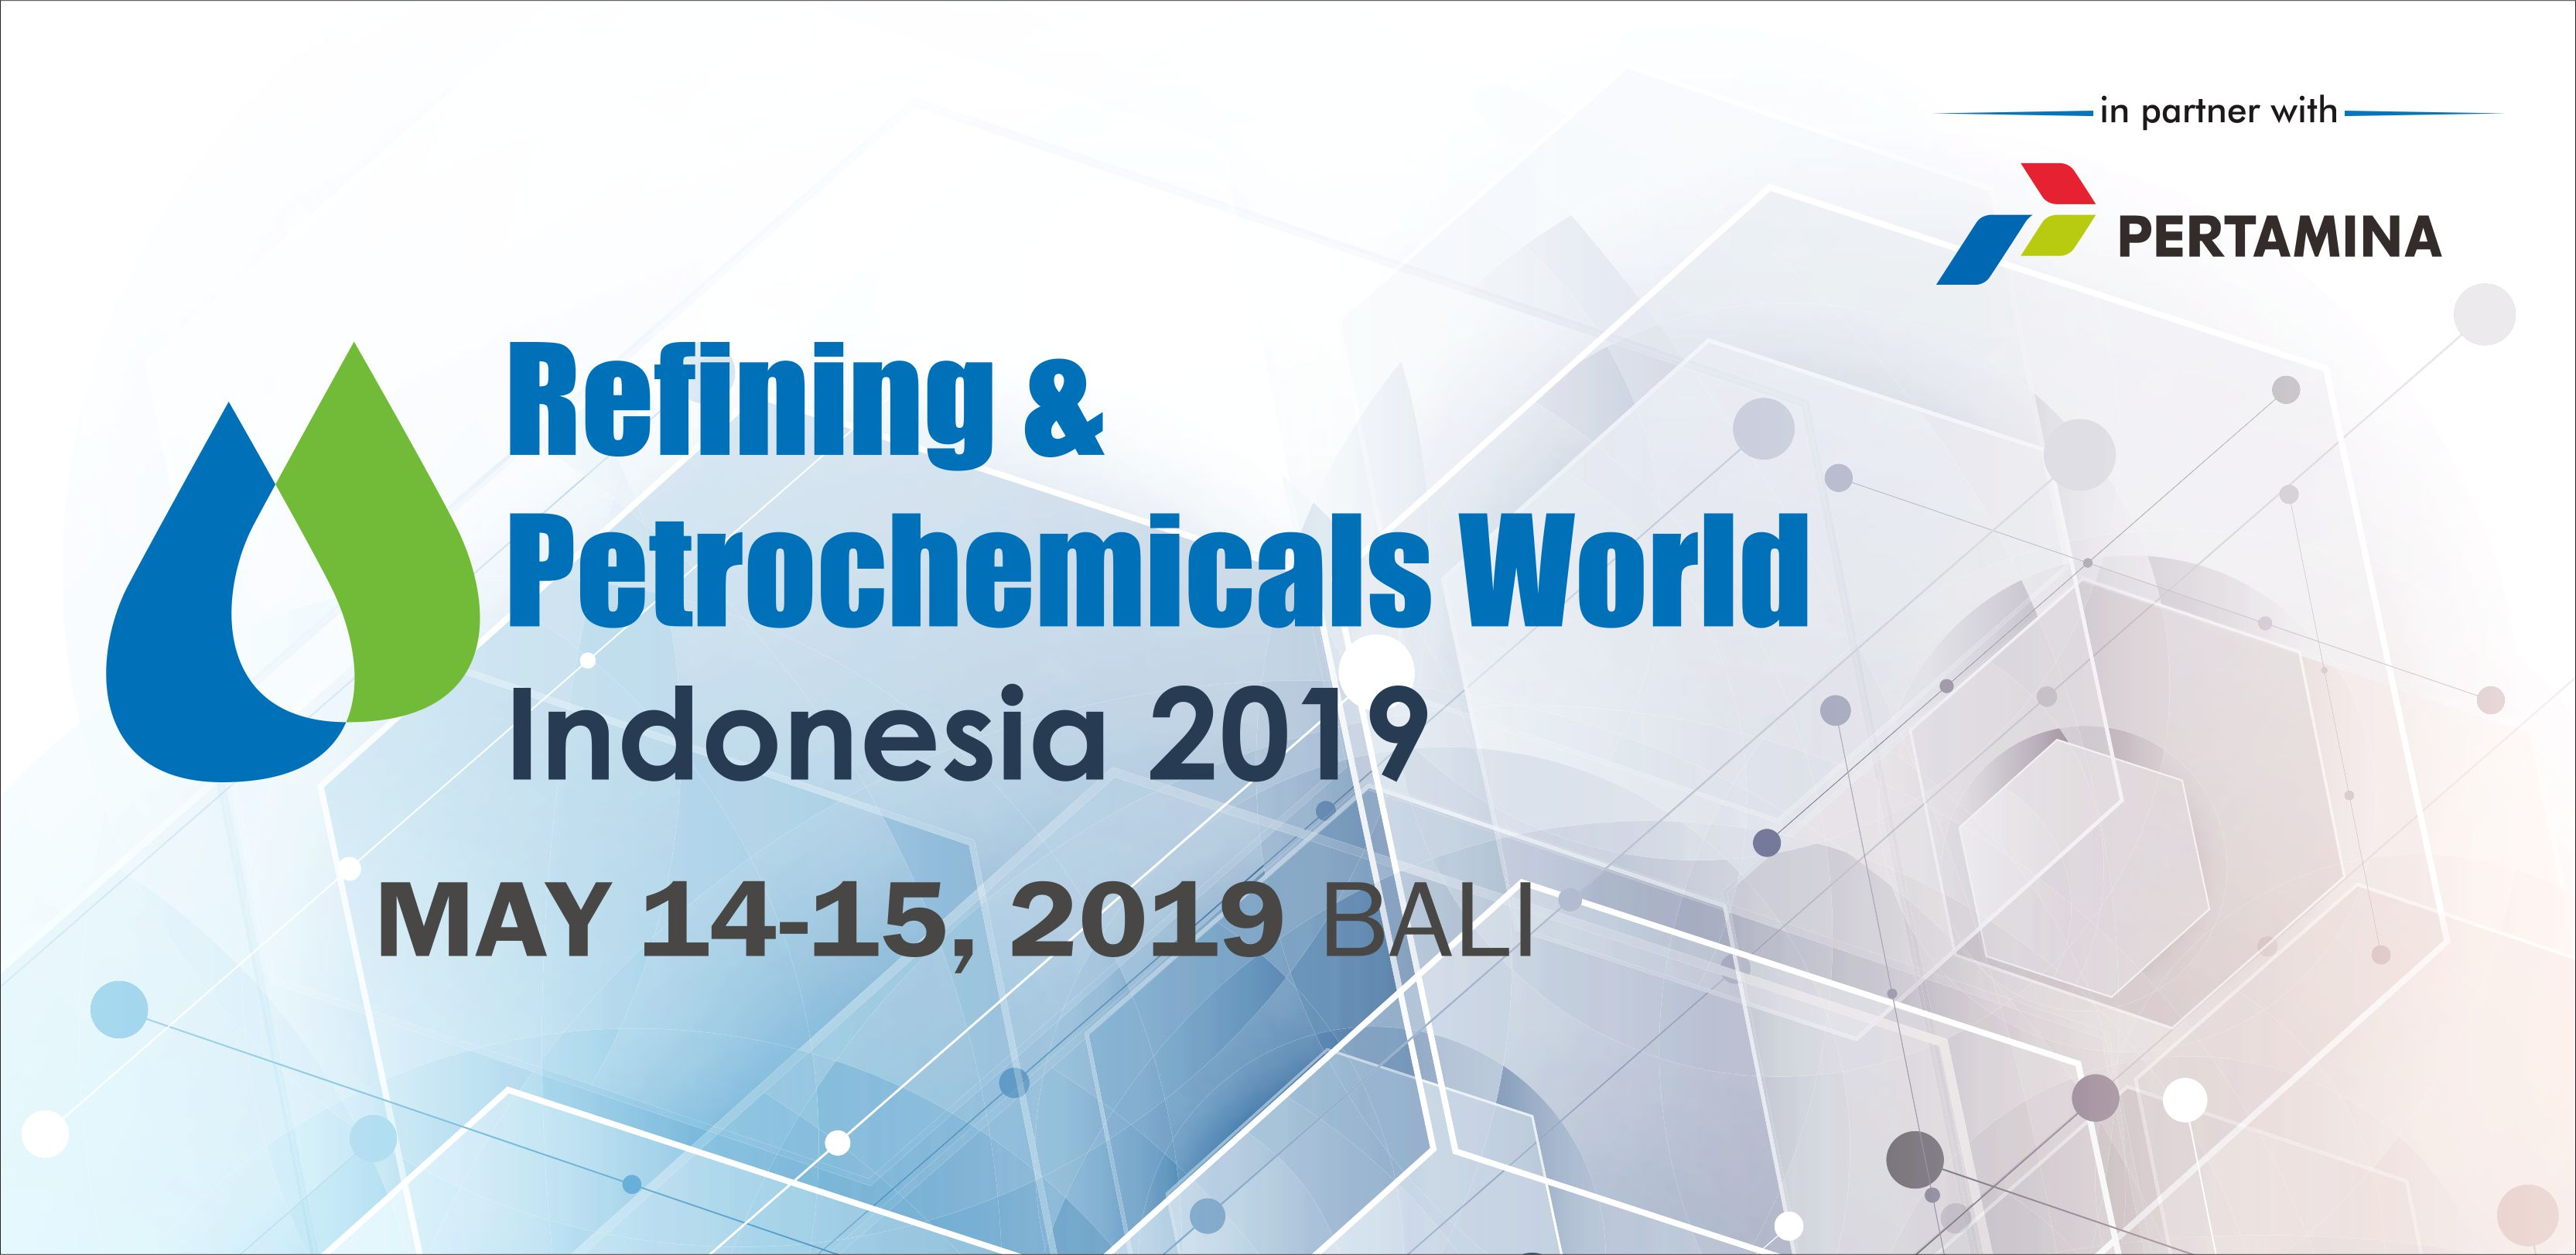 Refining & Petrochemicals World Indonesia 2019